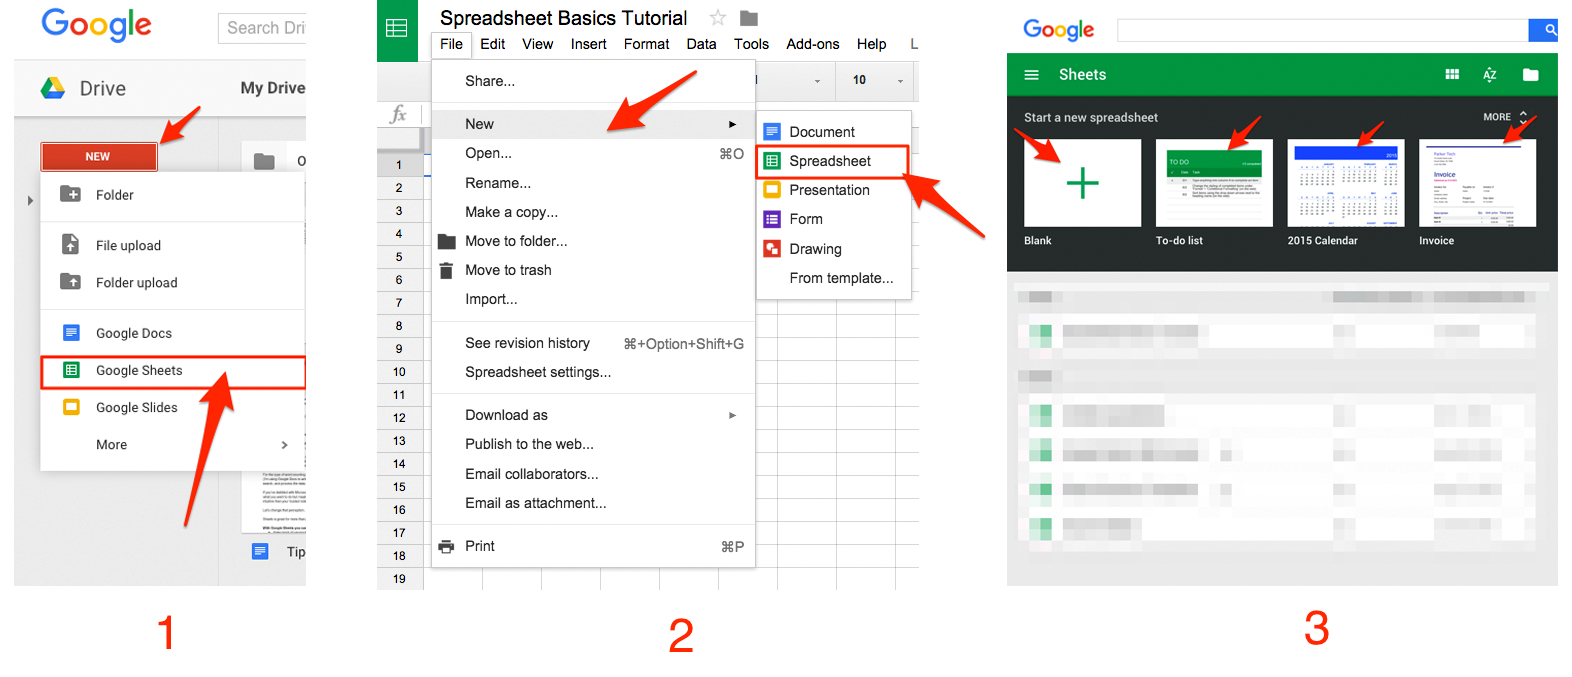 Google Sheets 101: The Beginner's Guide To Online Spreadsheets   The With Create Your Own Spreadsheet